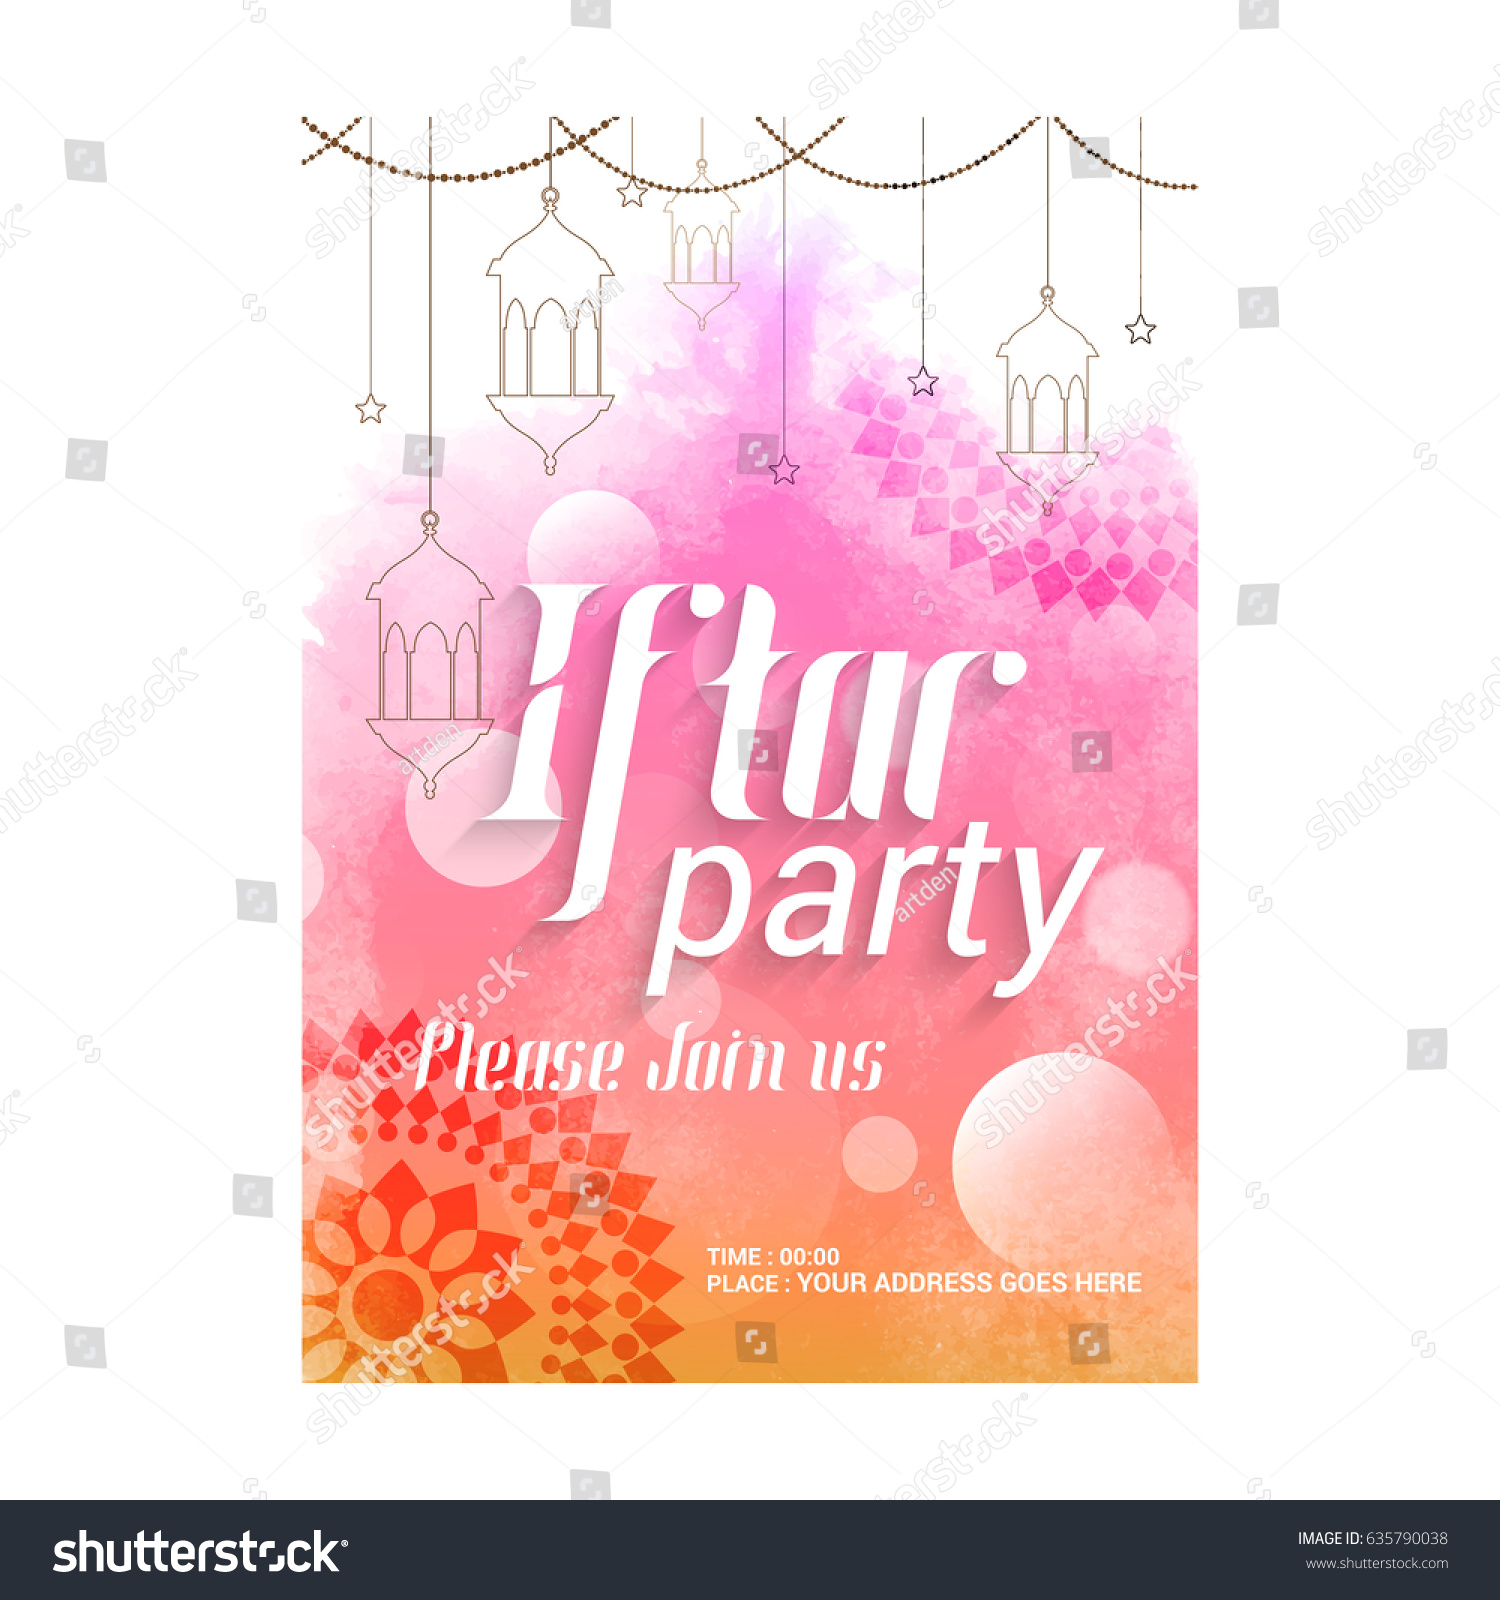 Creative Abstract Party Invitation Flyer Iftar Stock Vector ...